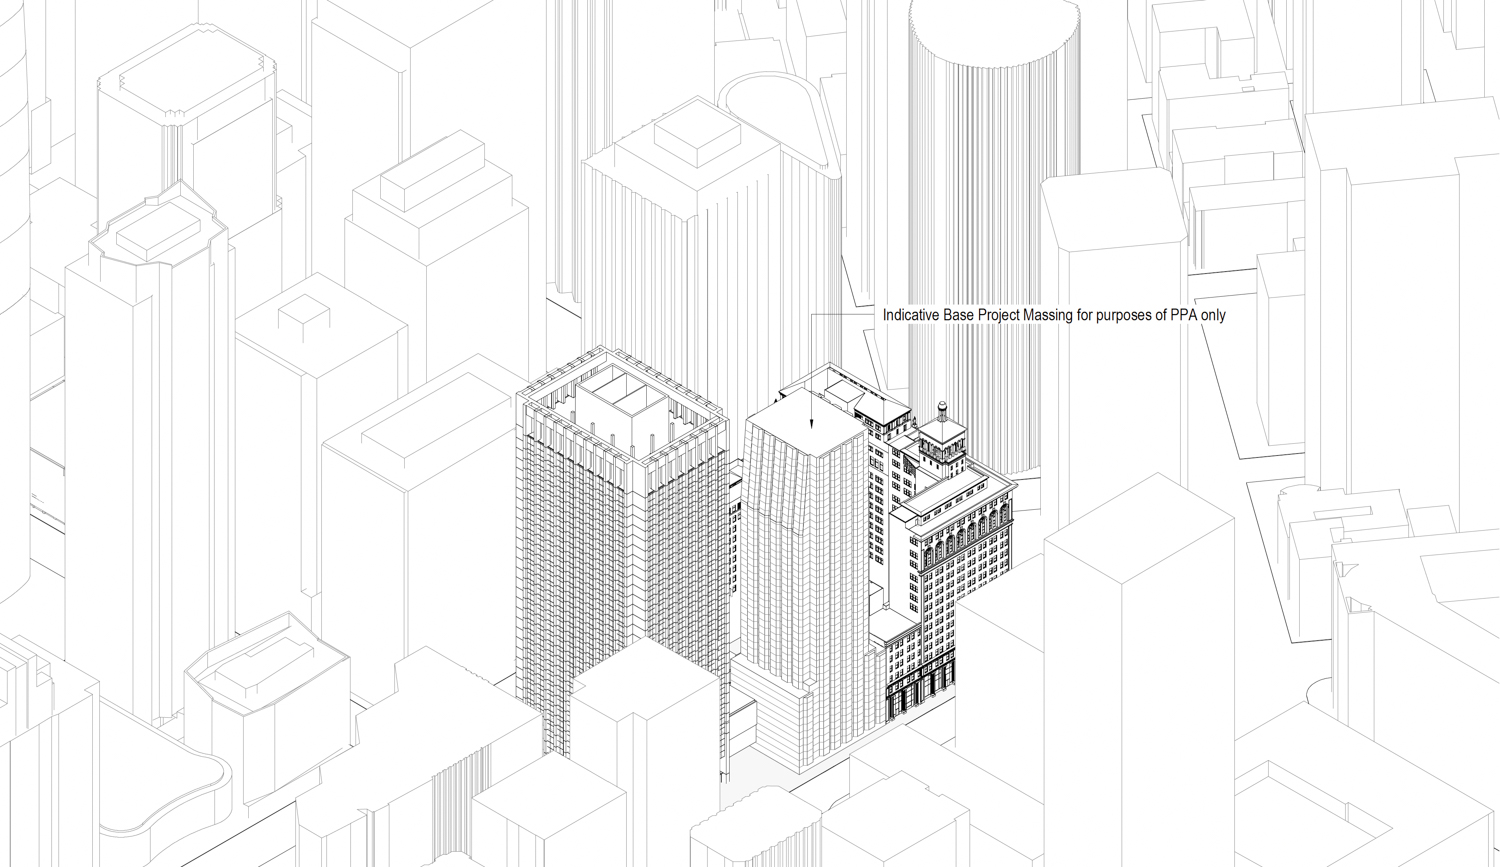 50 Main Street base project, illustration by Foster and Partners